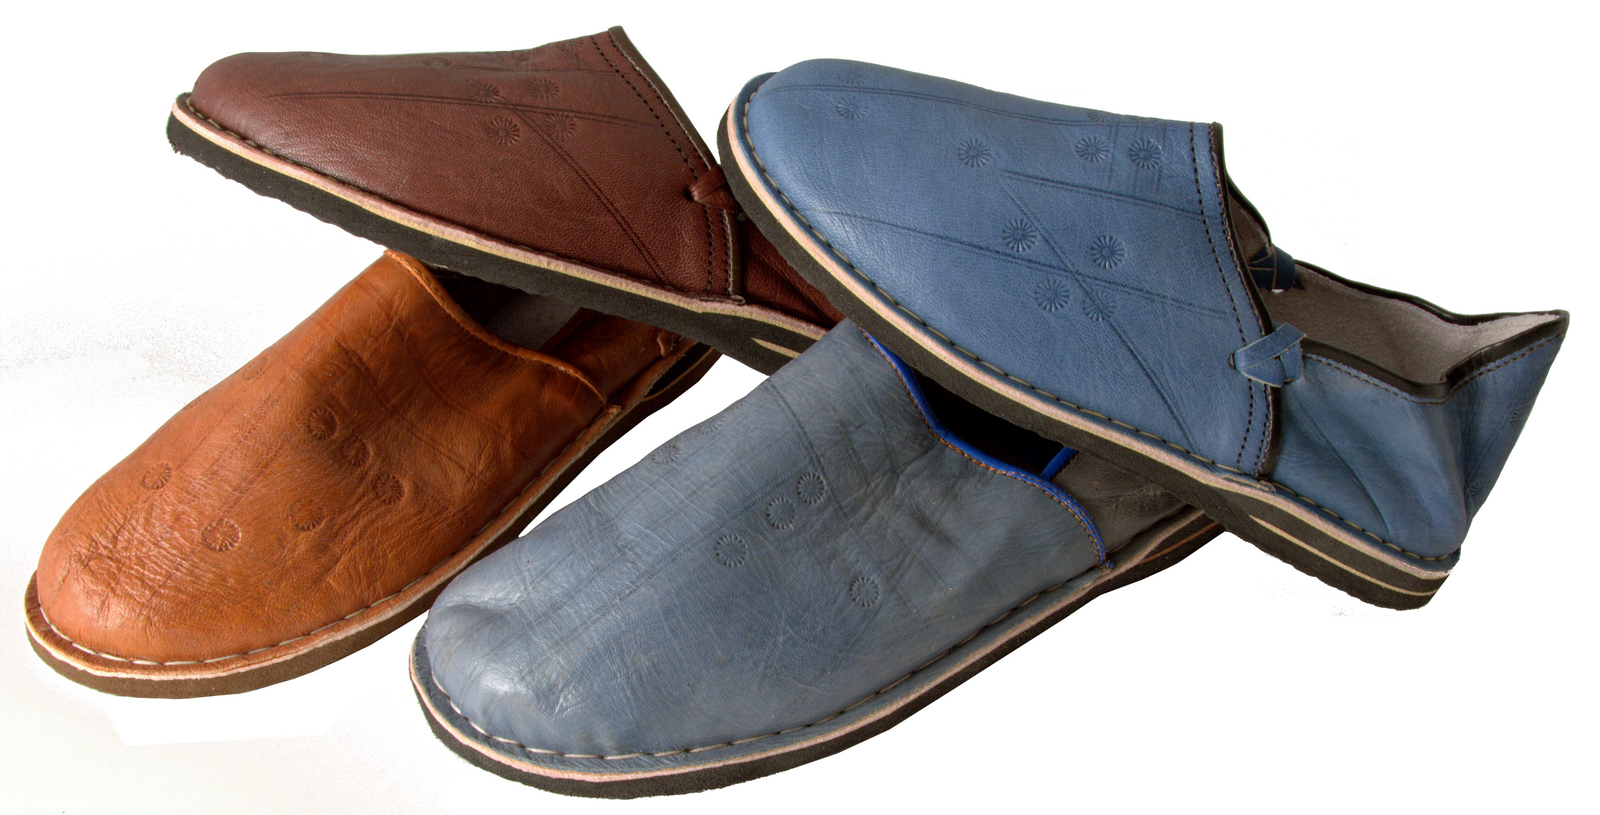 handmade danbira babouches moroccan leather slippers for men in brown or blue gundara. Black Bedroom Furniture Sets. Home Design Ideas